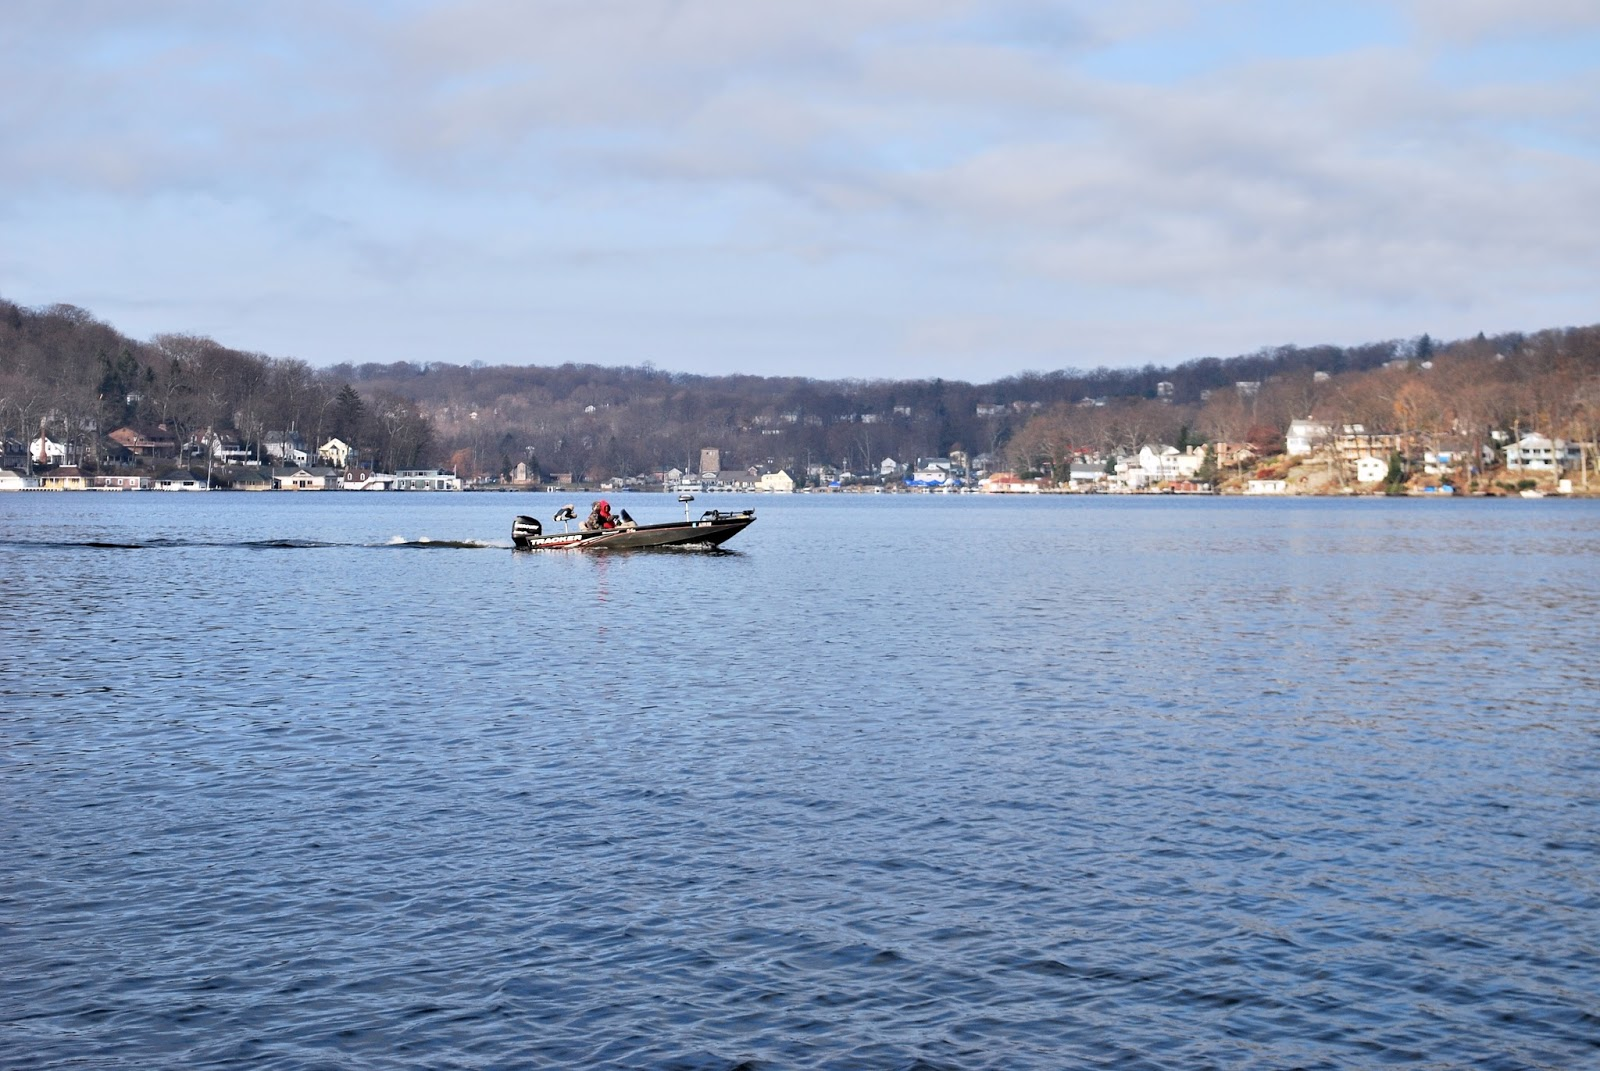 Litton 39 s fishing lines like october in december on lake for Lake hopatcong fishing